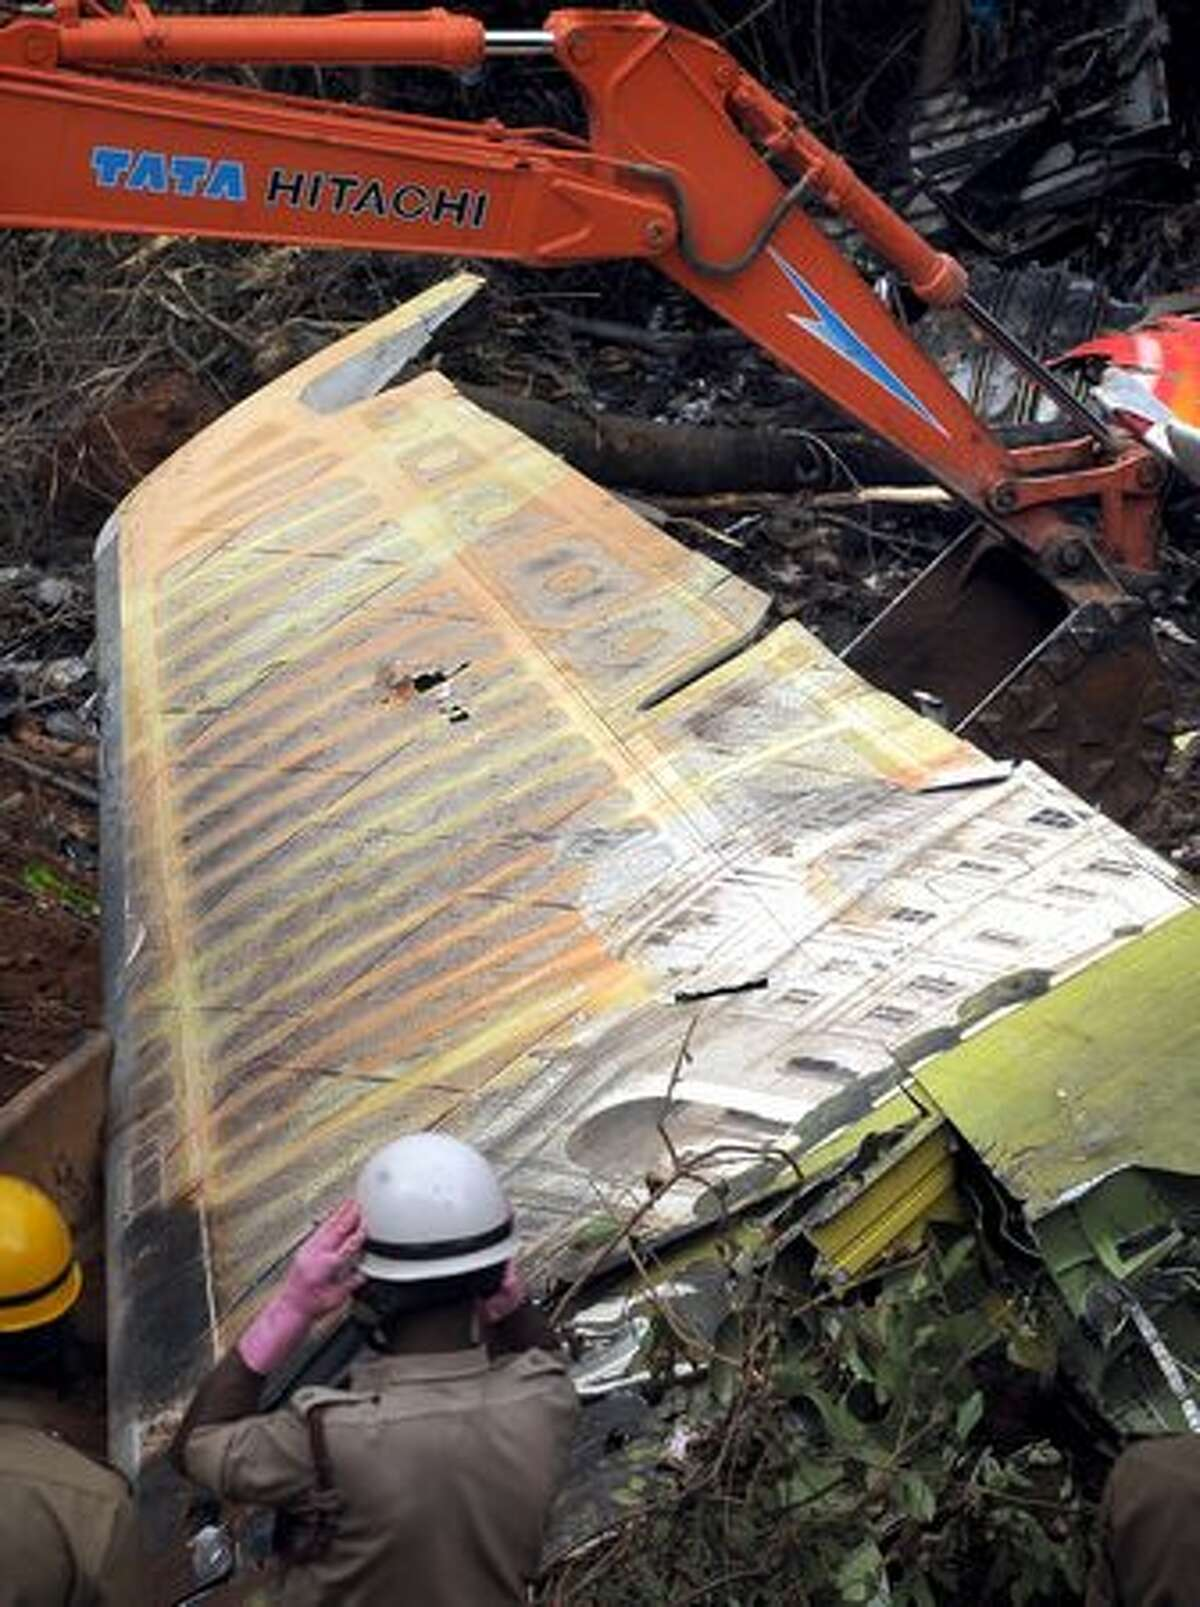 """Indian firefighters work at the plane crash site of the Air India Express Boeing 737-800 in Mangalore. Investigators combed the wreckage of an Air India Express jet that crashed into a forested gorge with the loss of 158 lives, searching for the """"black box"""" data recorder."""